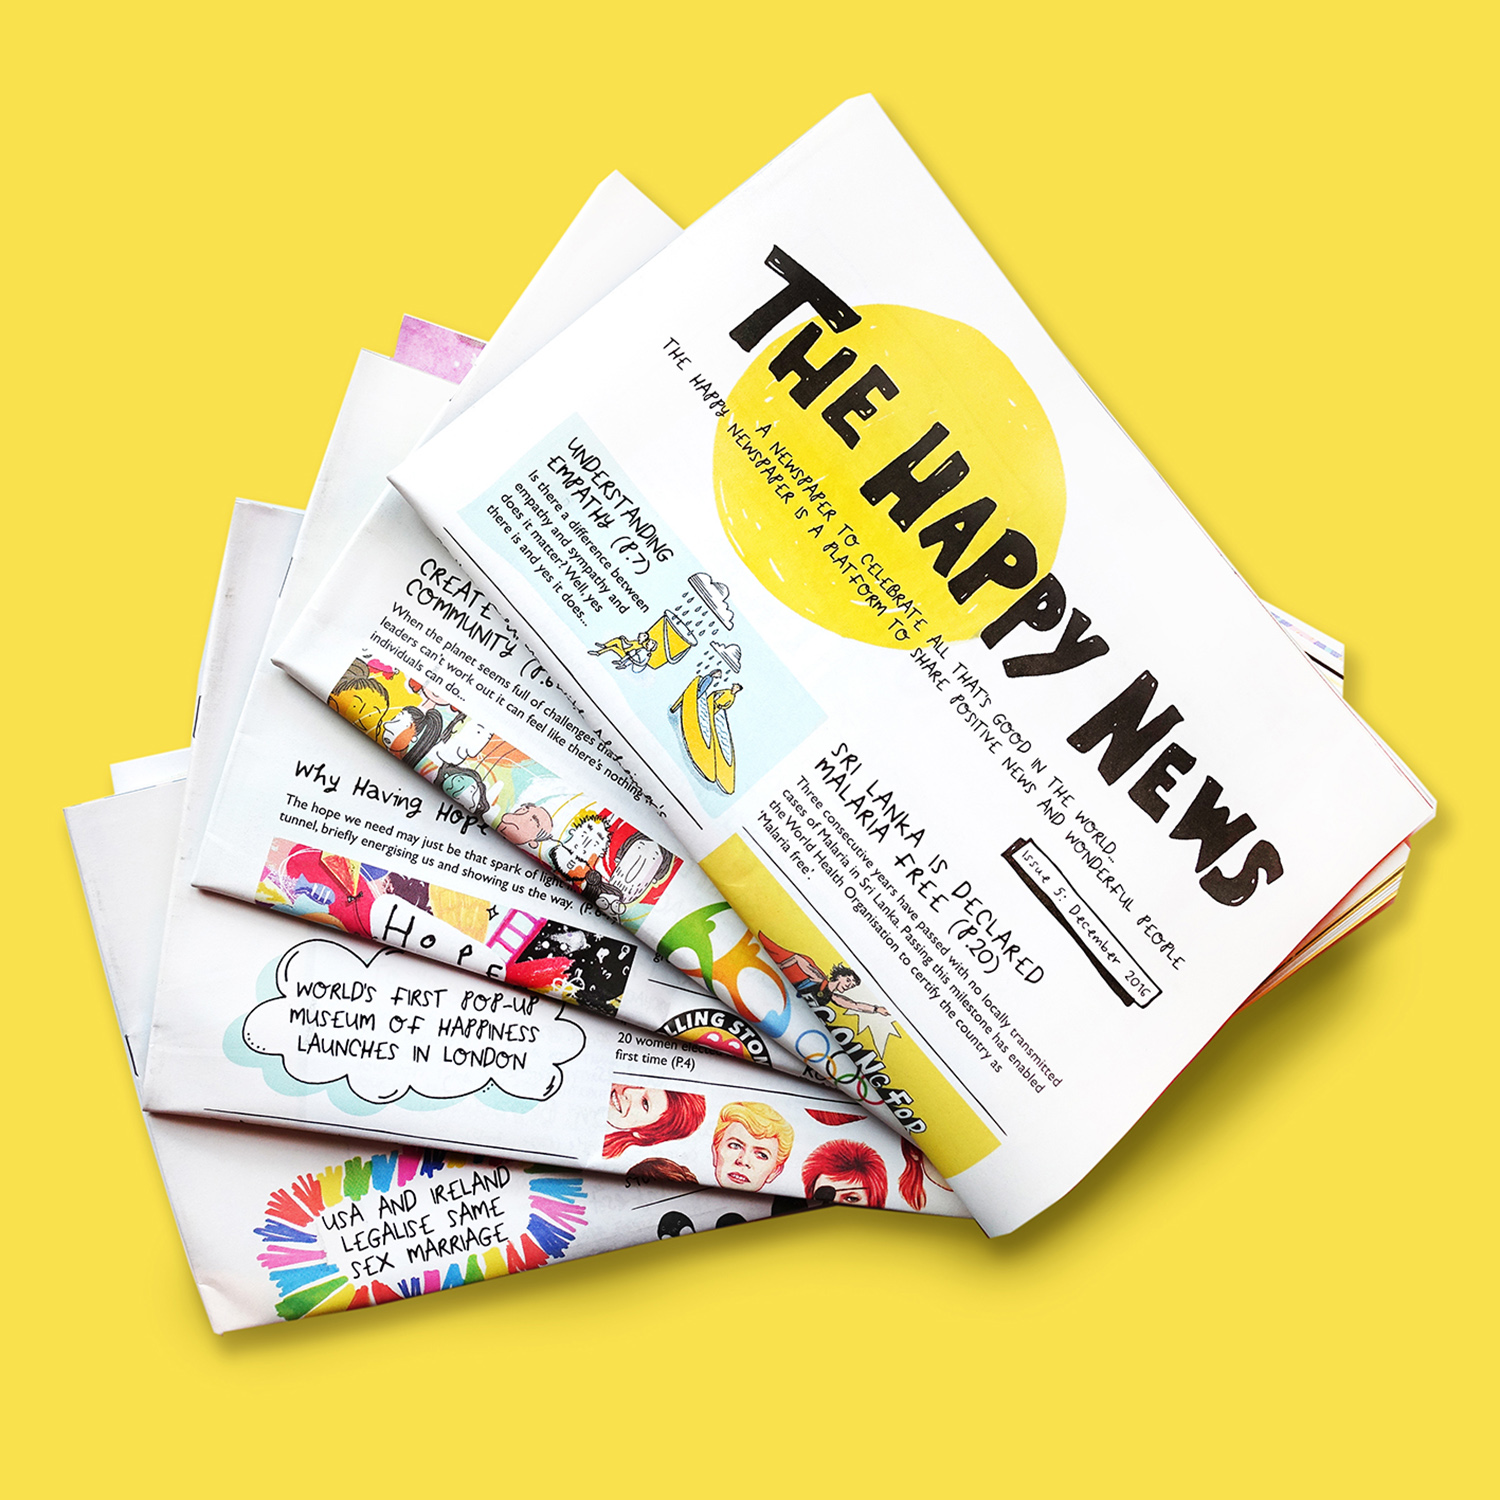 The Happy Newspaper (GB£3.99/3months)